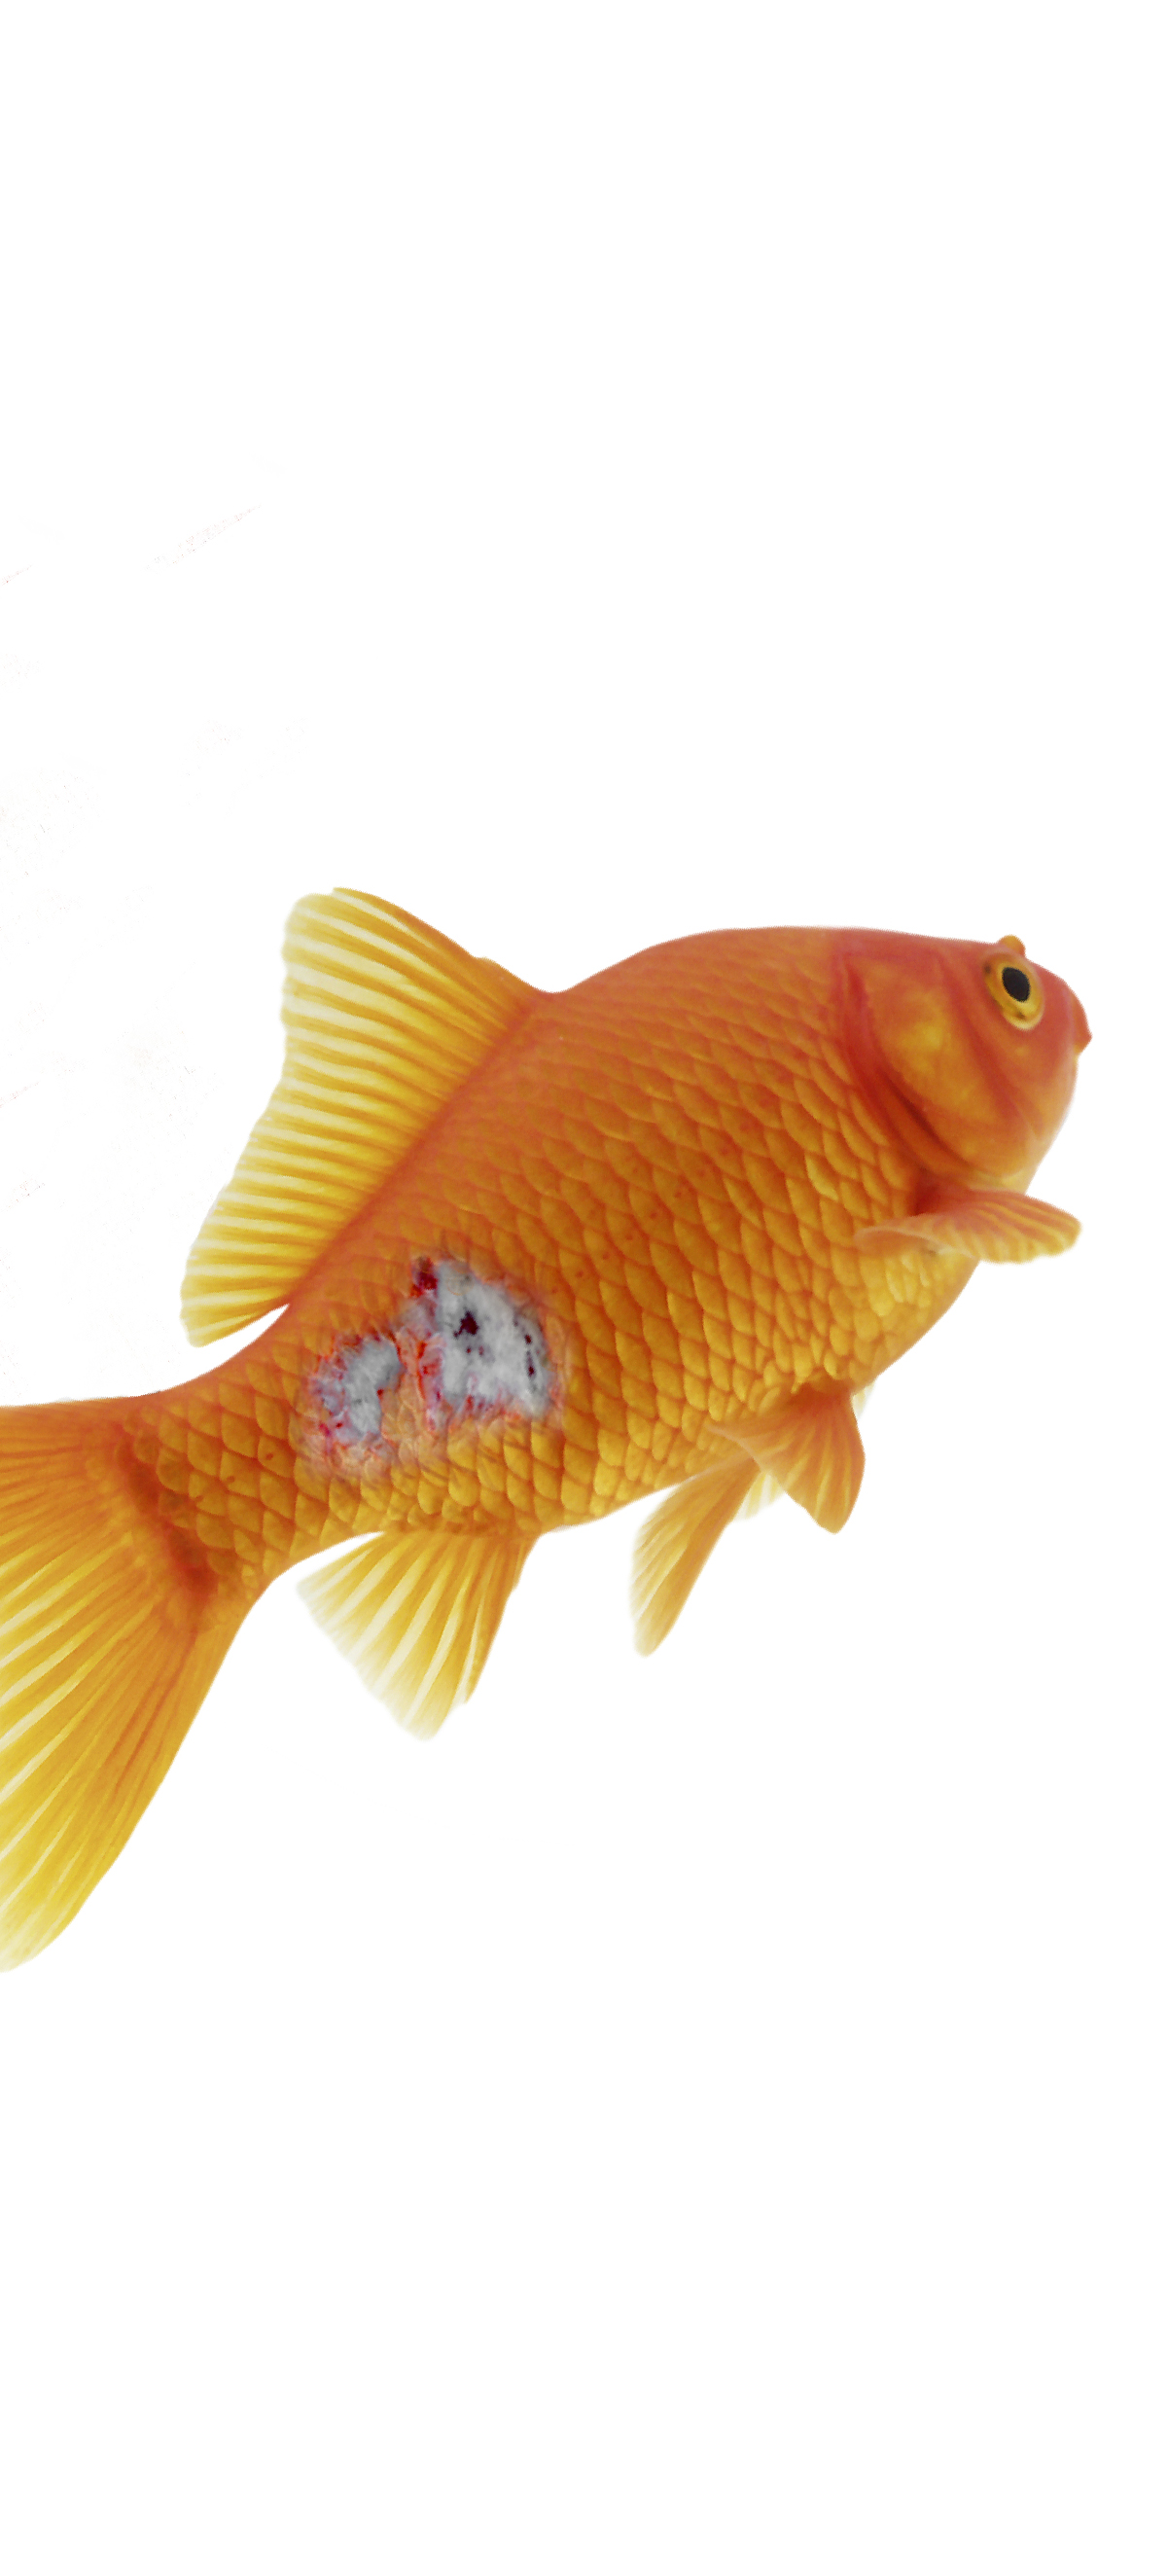 Goldfish with sore red ulcer to its lower body